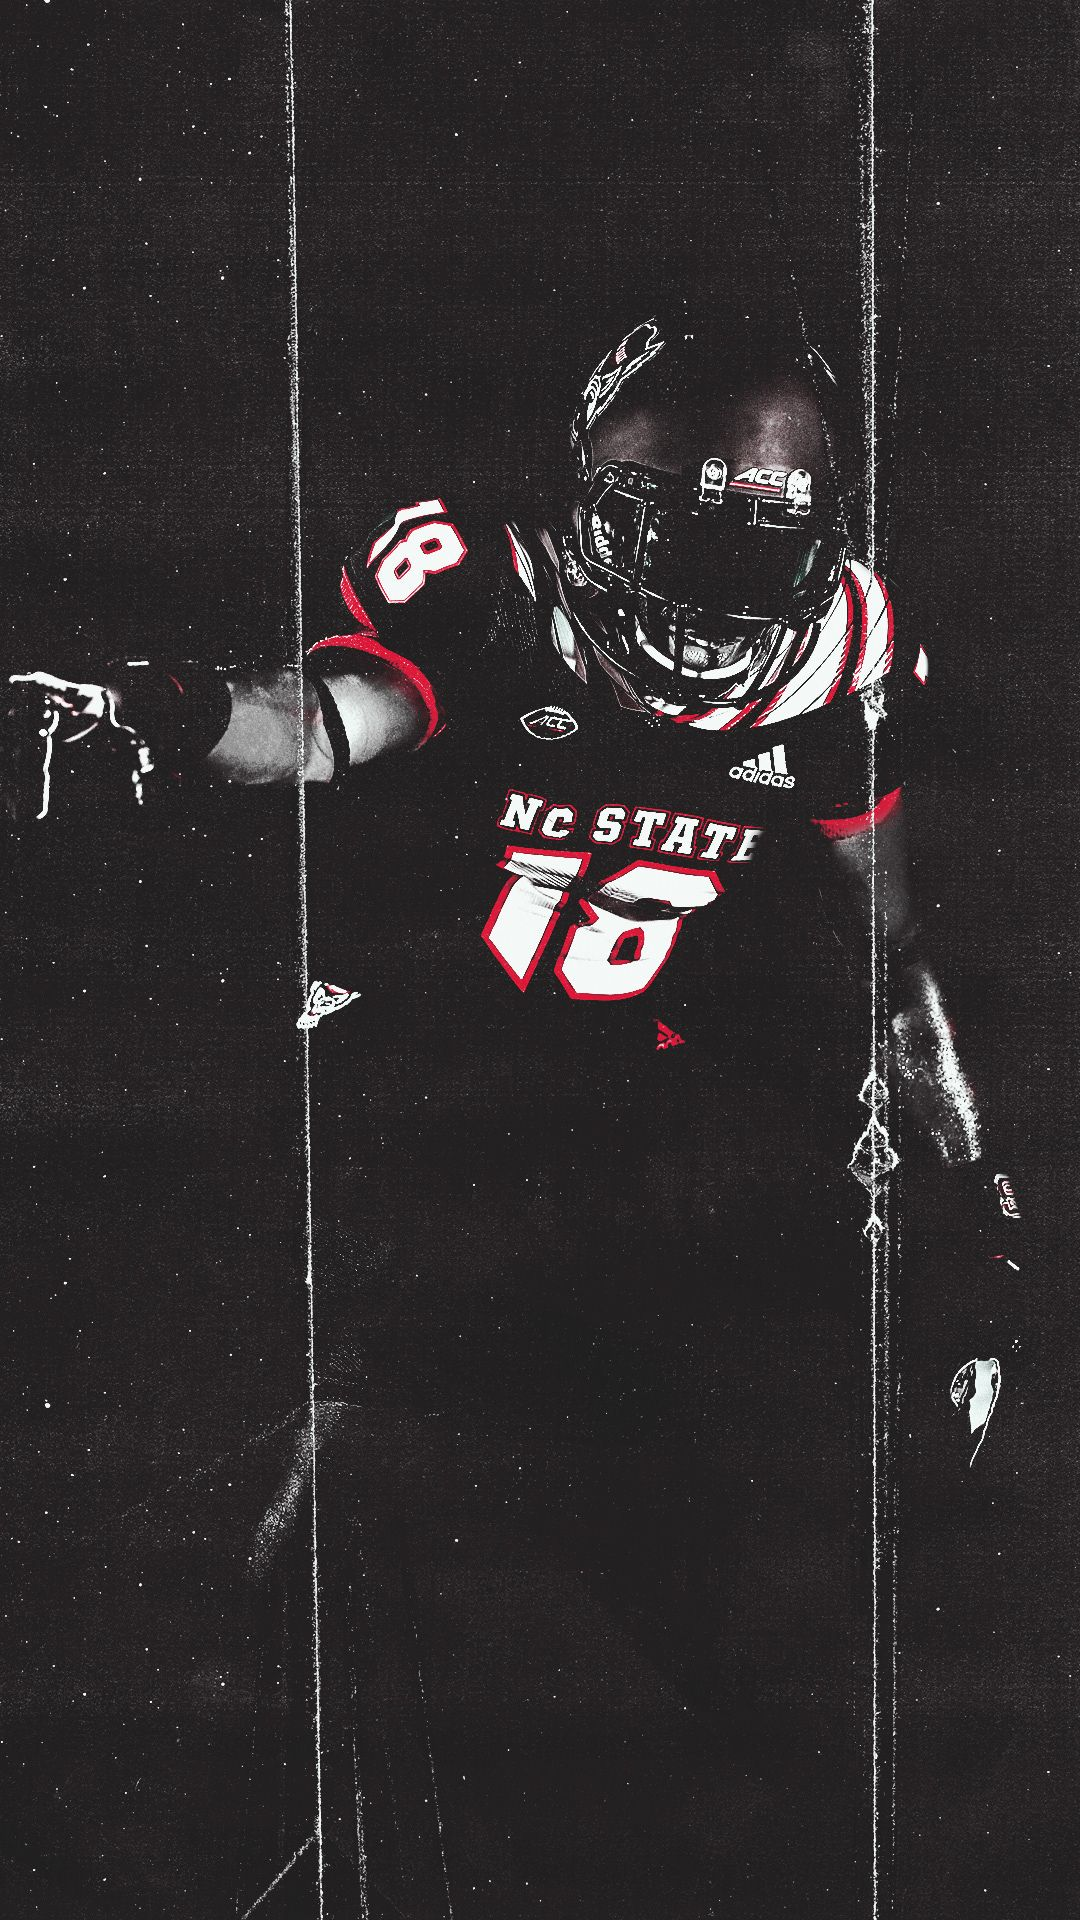 2018 2019 Nc State Football Graphic Content On Behance Nc State Football Nc State Football